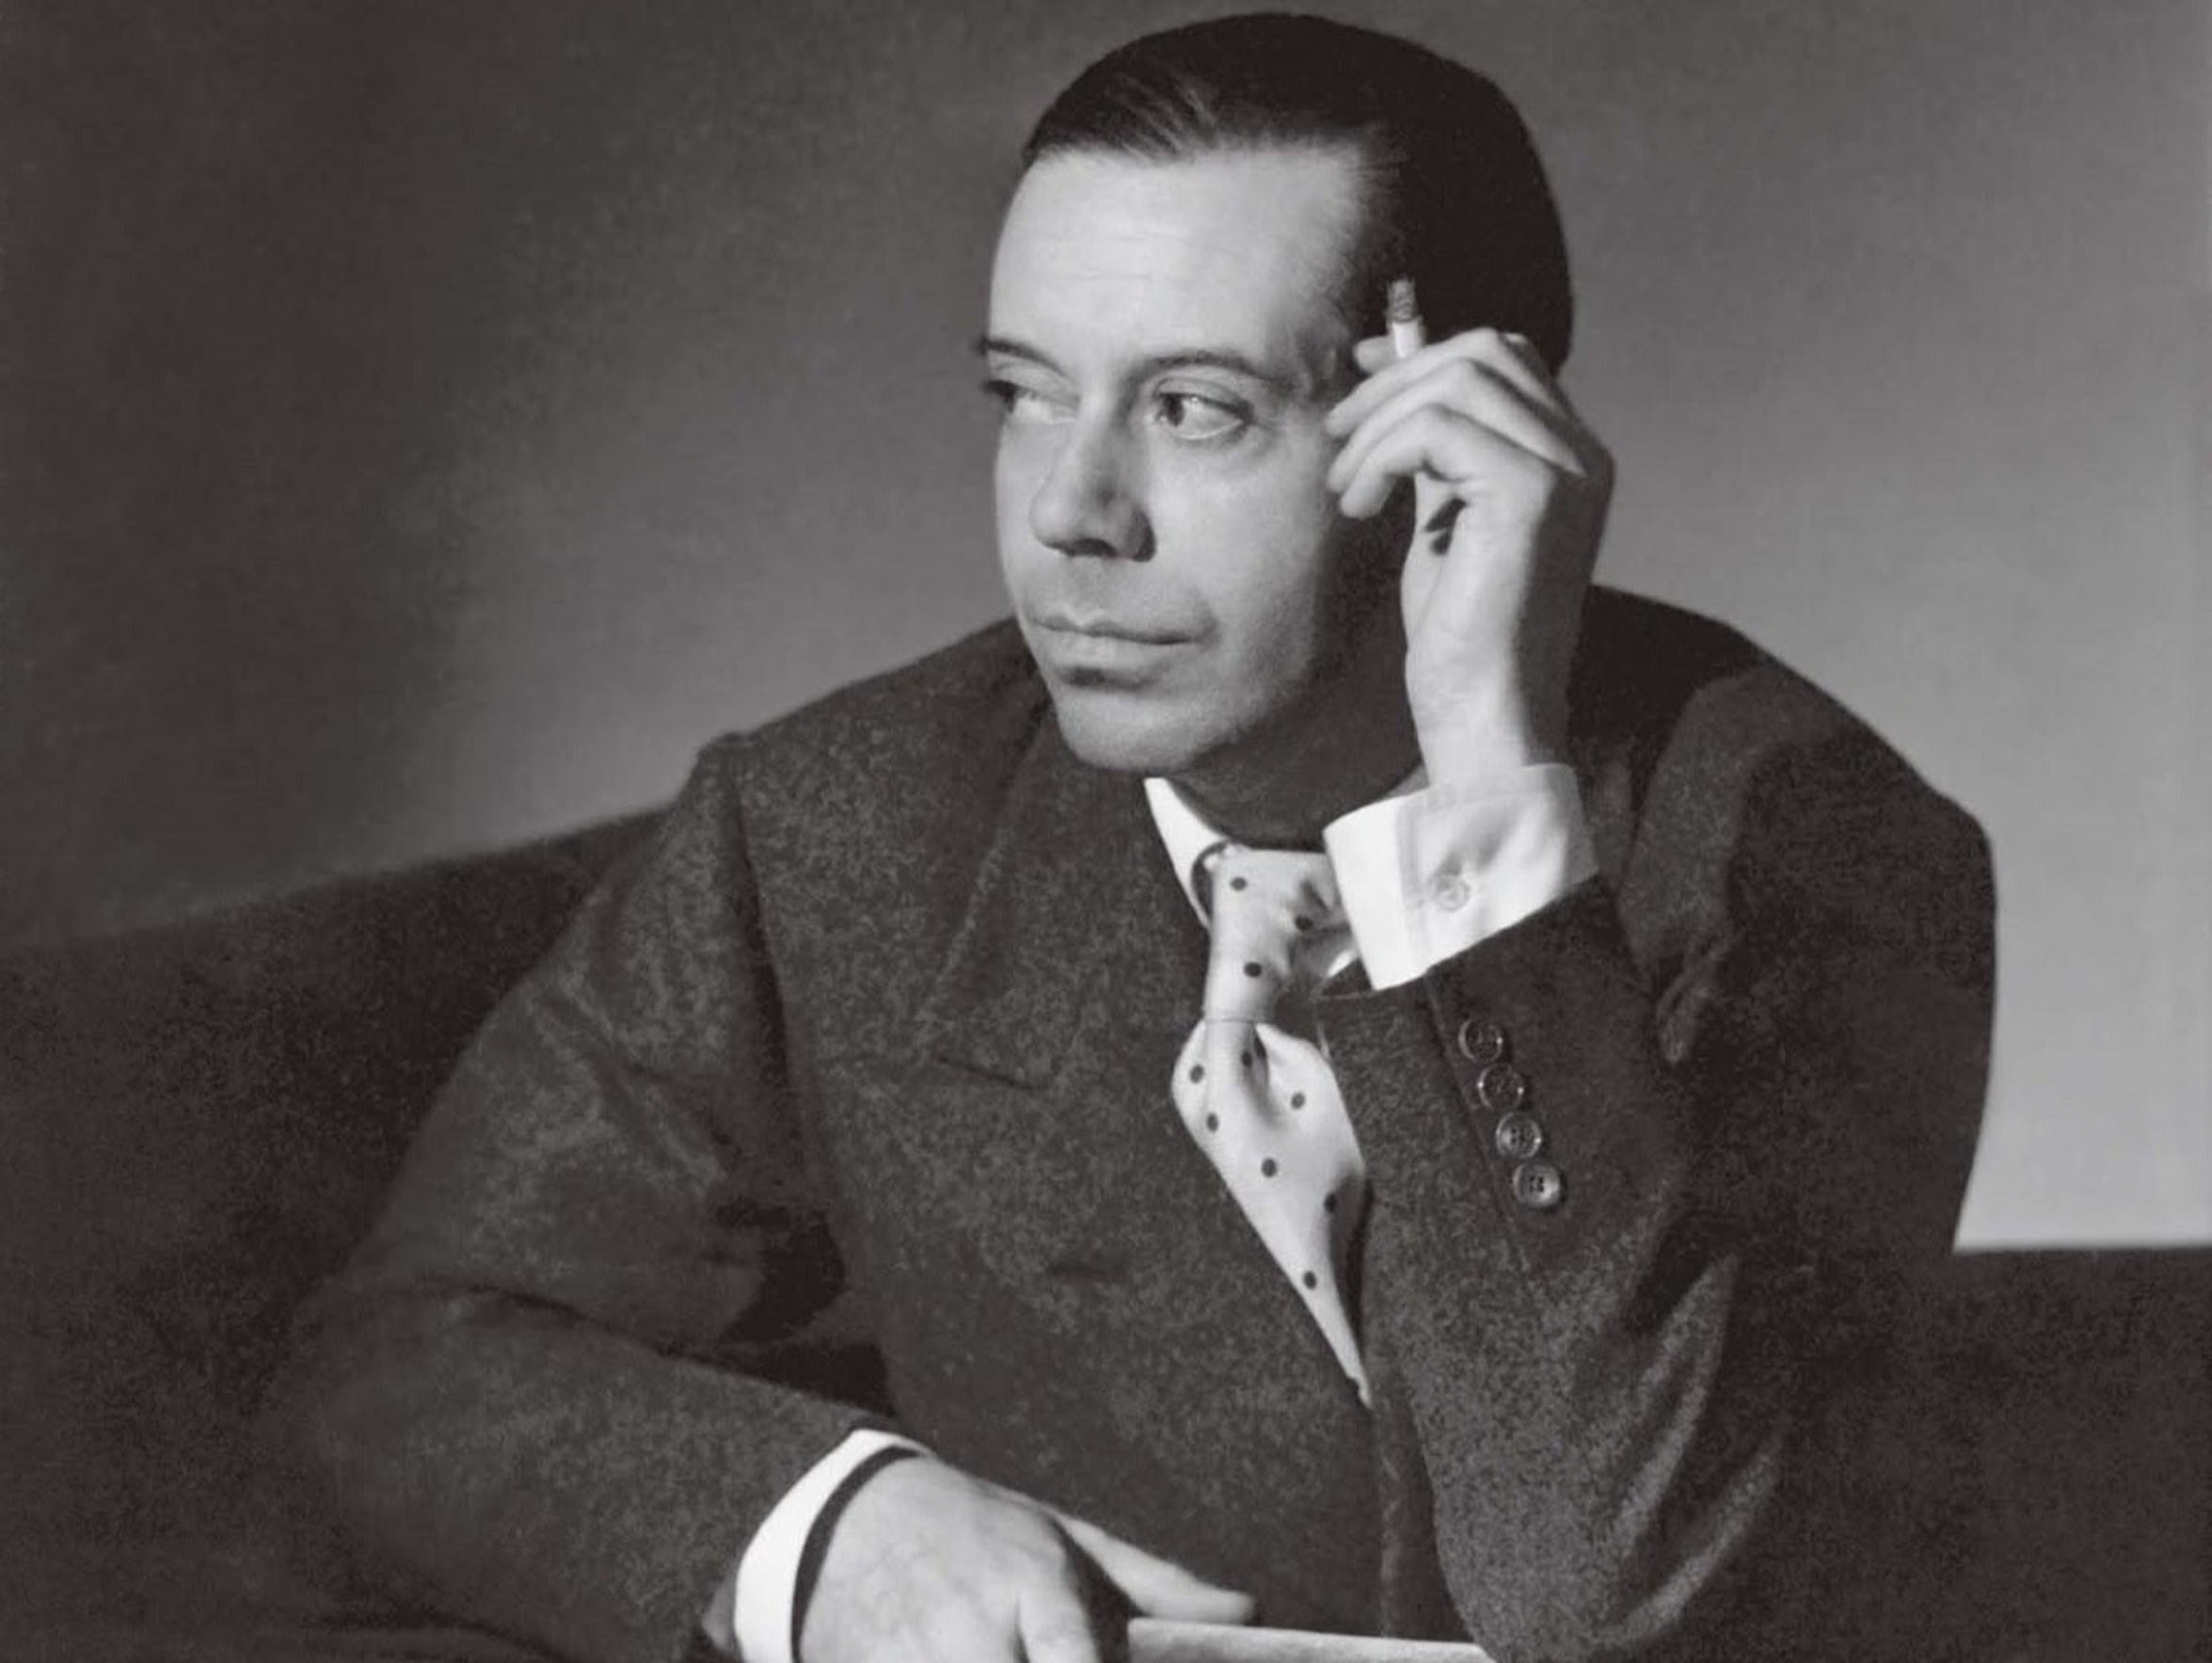 Cole Porter composed music and lyrics for Broadway